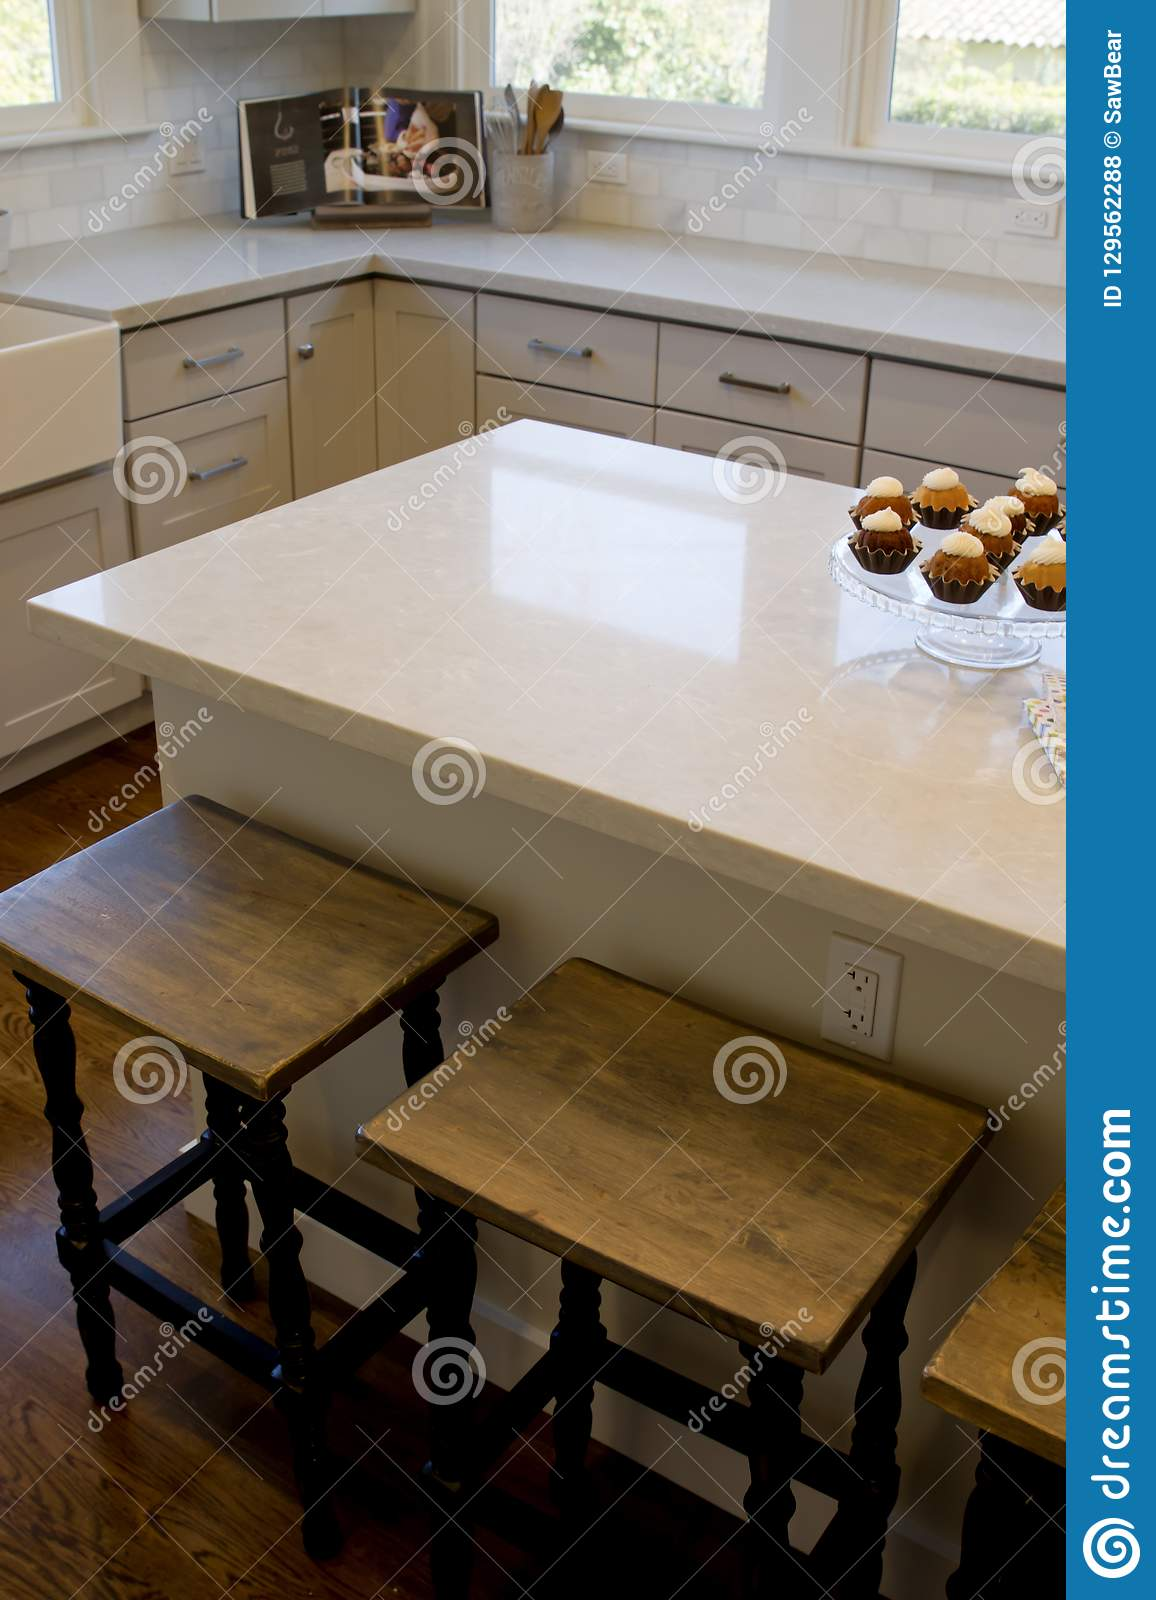 White Marble Island White Marble Kitchen Island Stock Photo Image Of Designer Floor